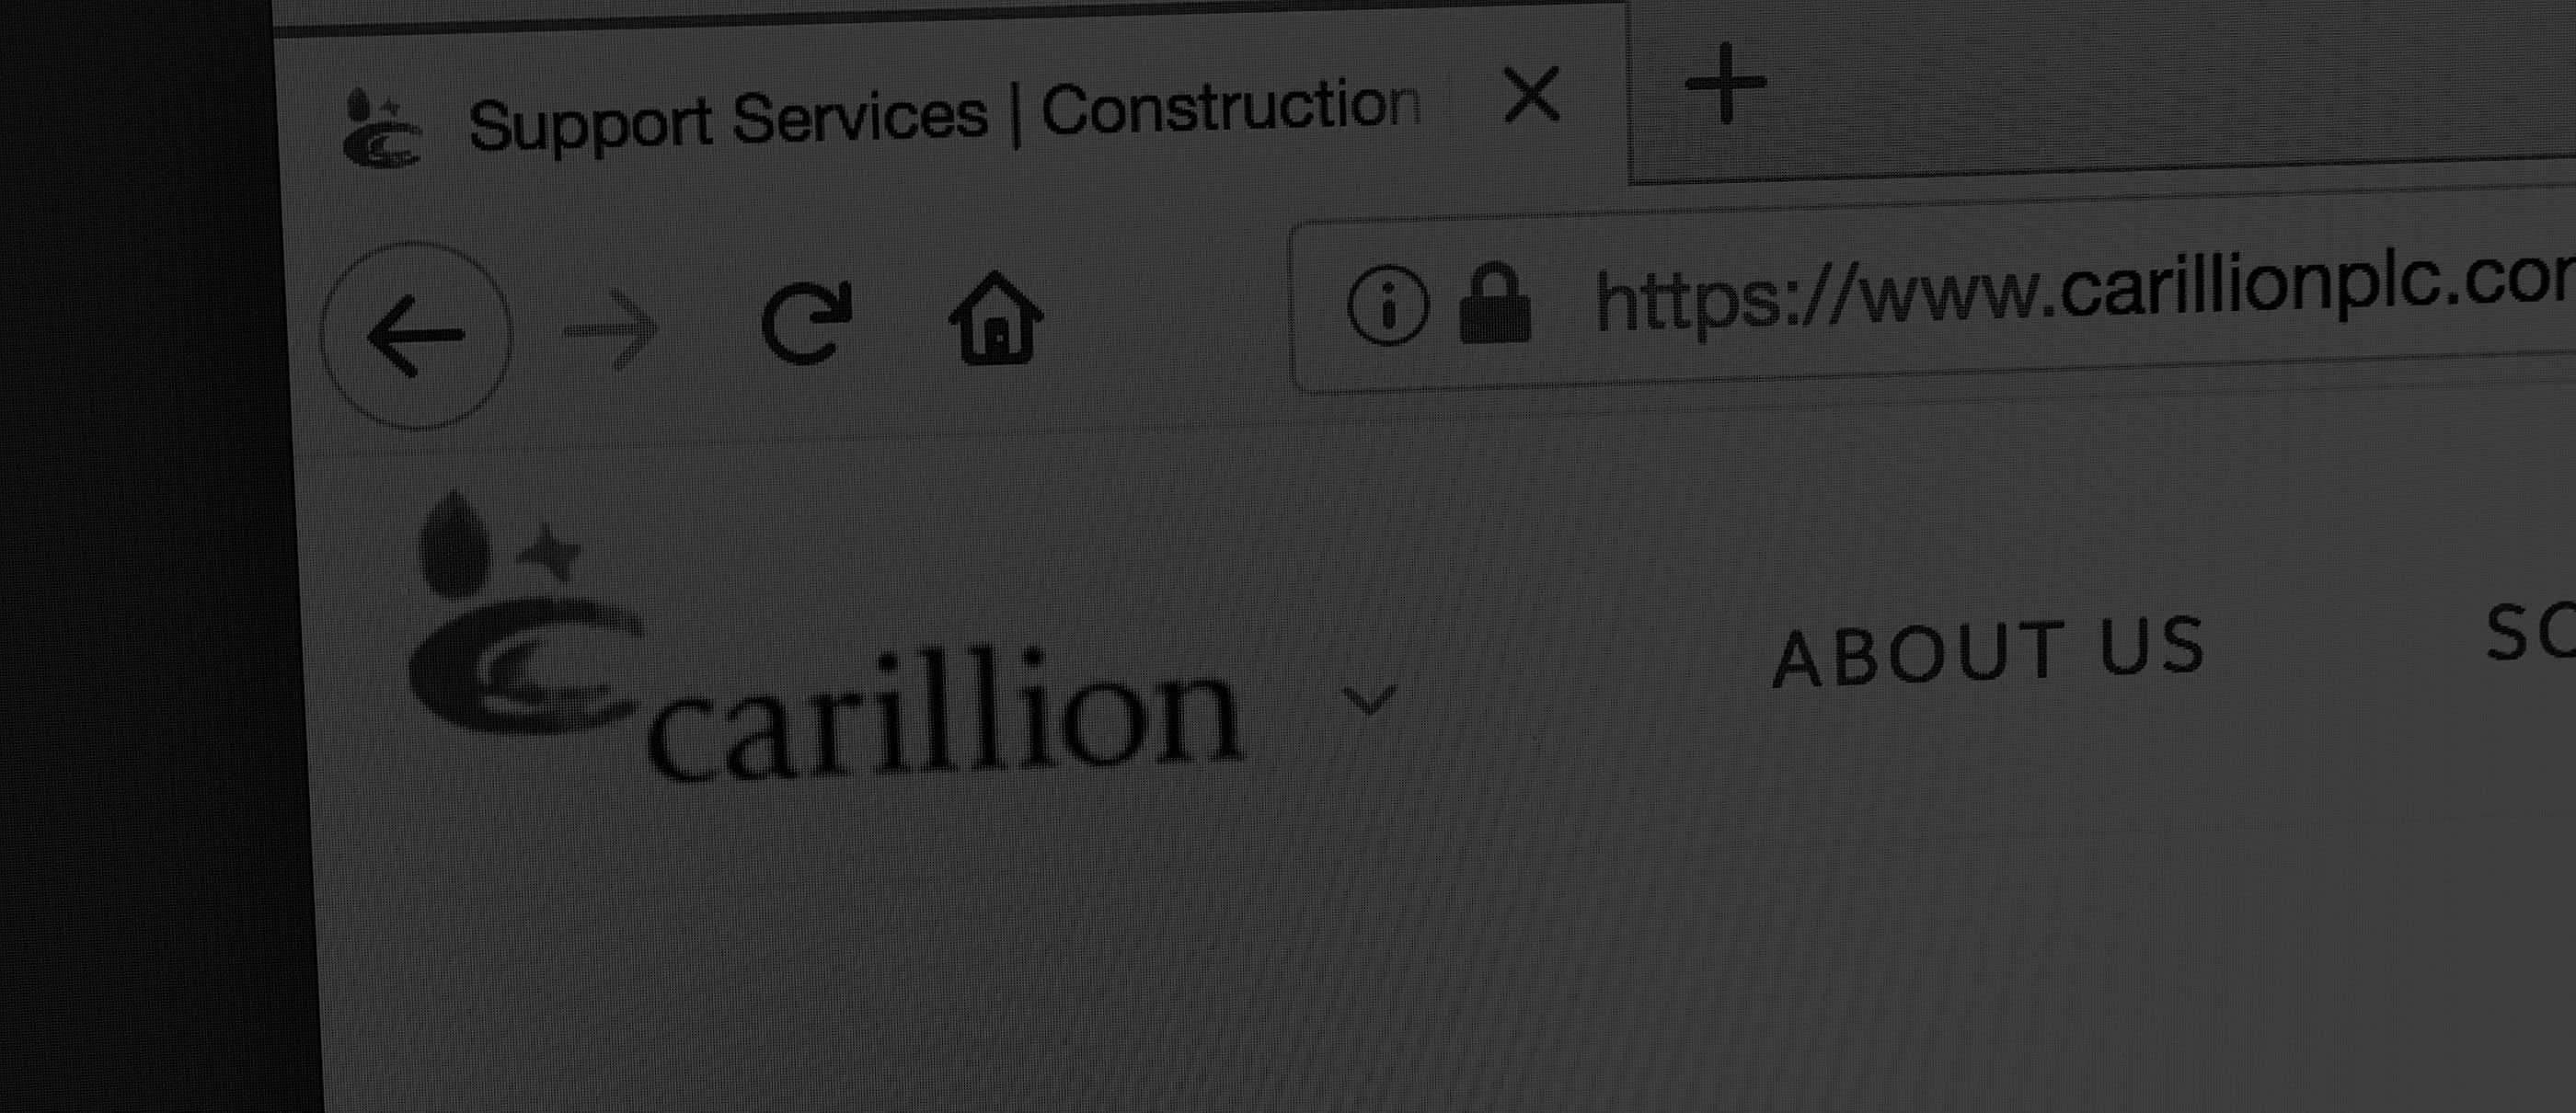 Kaleida: What Does Carillion's Demise Mean for the Construction Industry? Banner